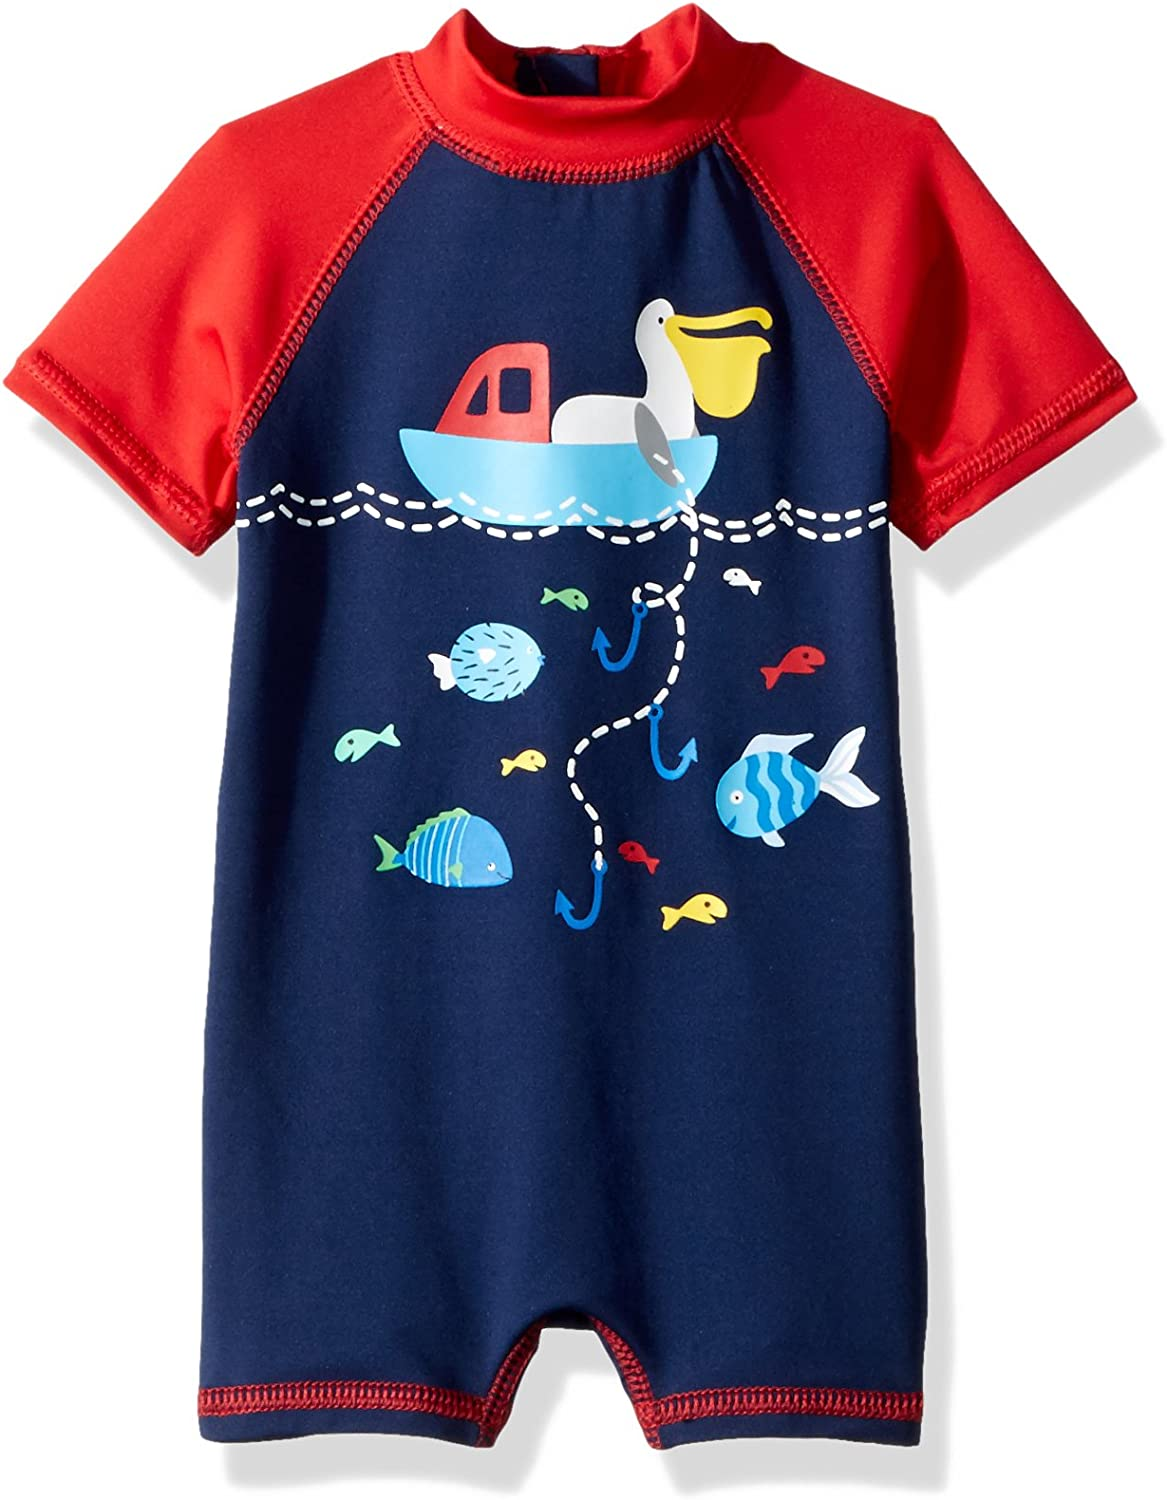 Wippette Baby Boys One-Piece Rash Guard Sunsuits Size 6-9 Months Newborn and Infant Sun Protection Swimsuit Navy//Stripe Crab